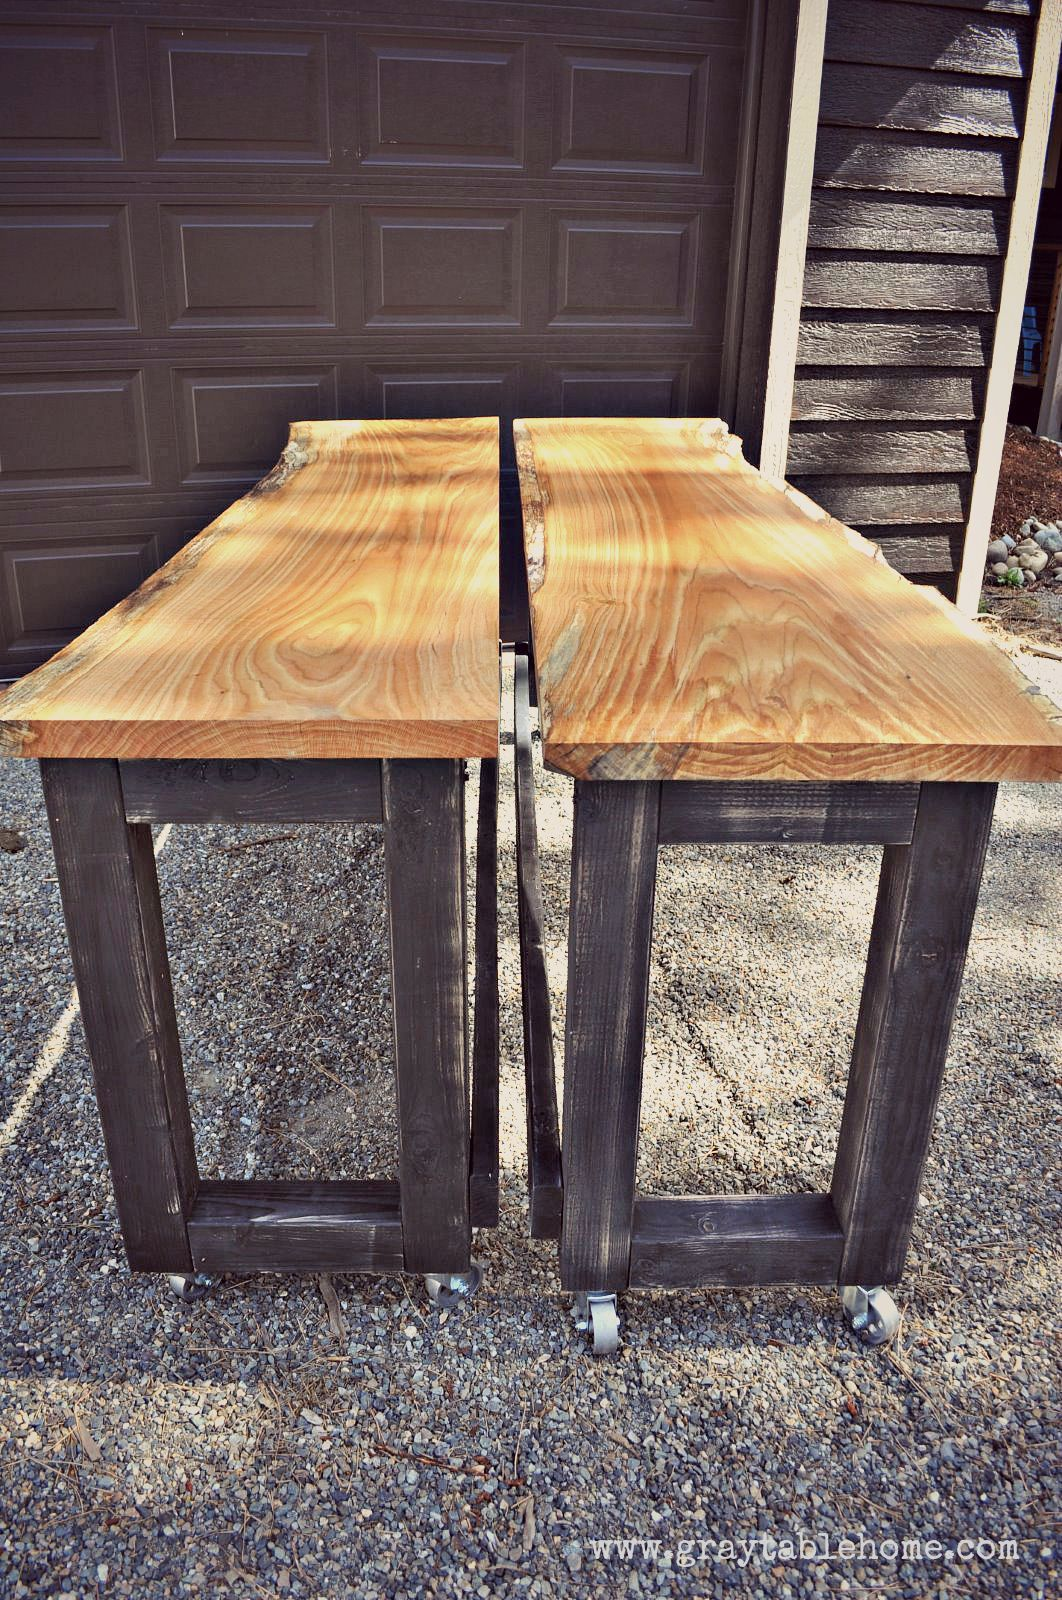 Well known DIY Live Edge Oak Pub Tables - on wheels so that they can be  QM06